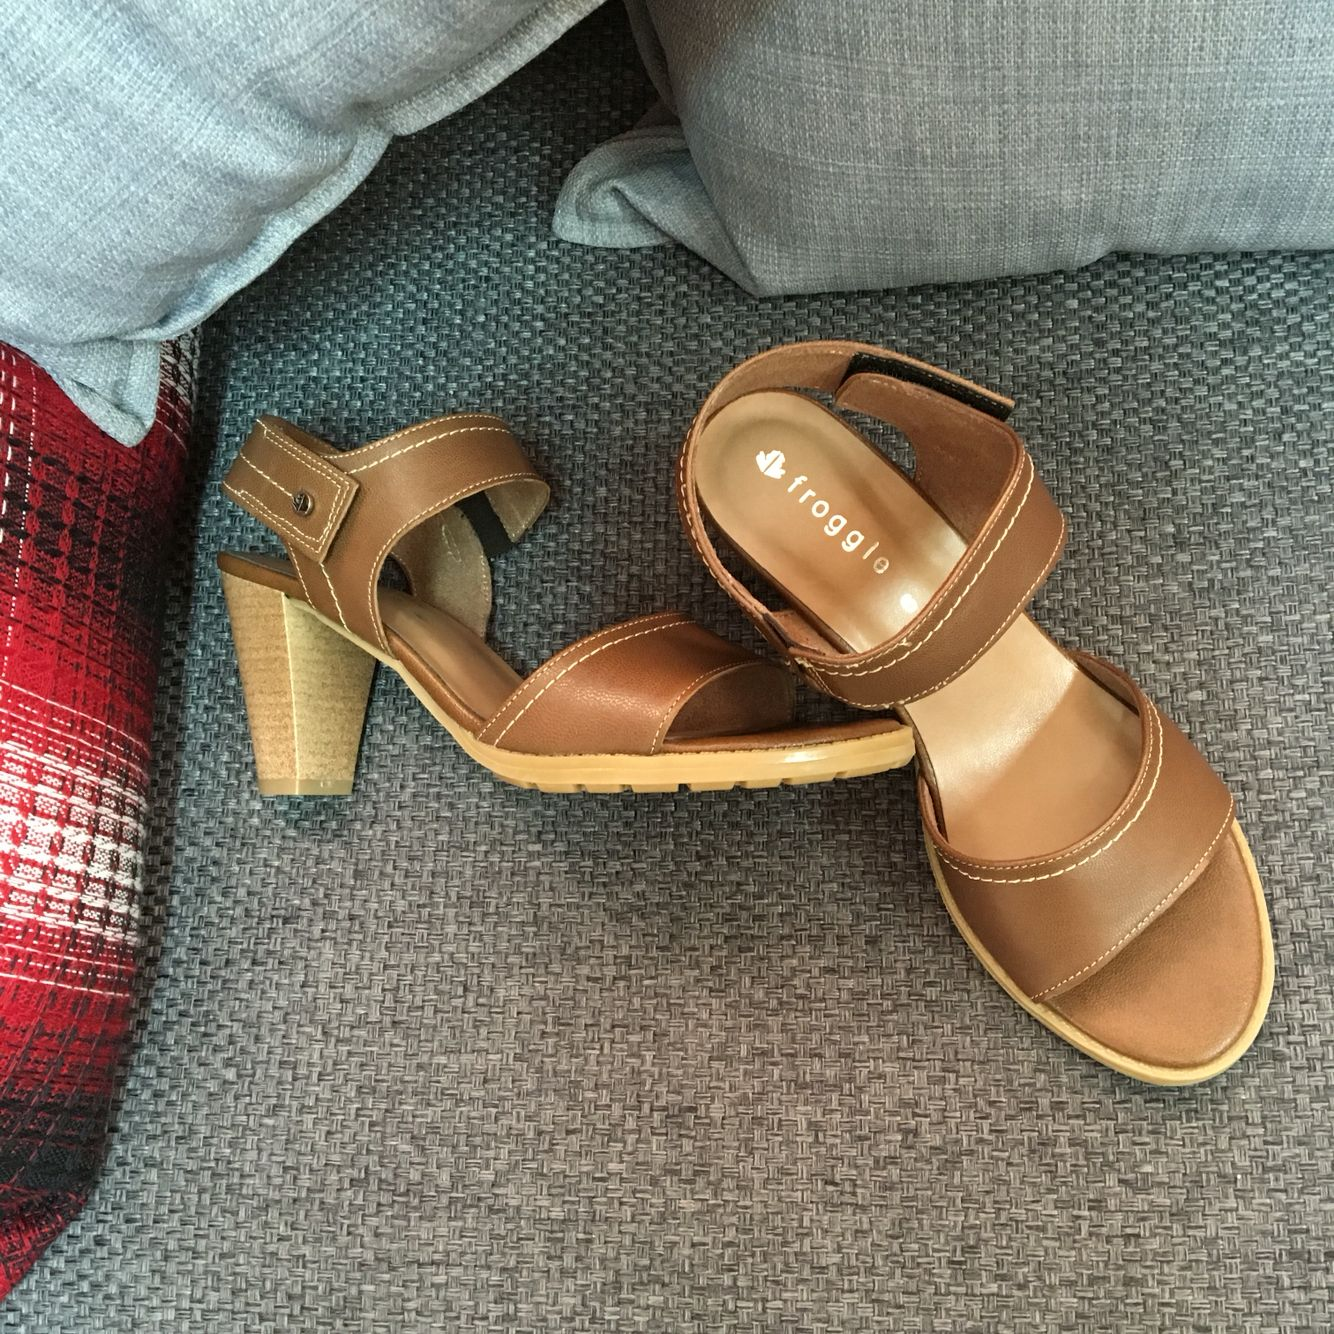 Froggie Shoes Block Heel Sandals Comfort Zone For The Perfect Lady These